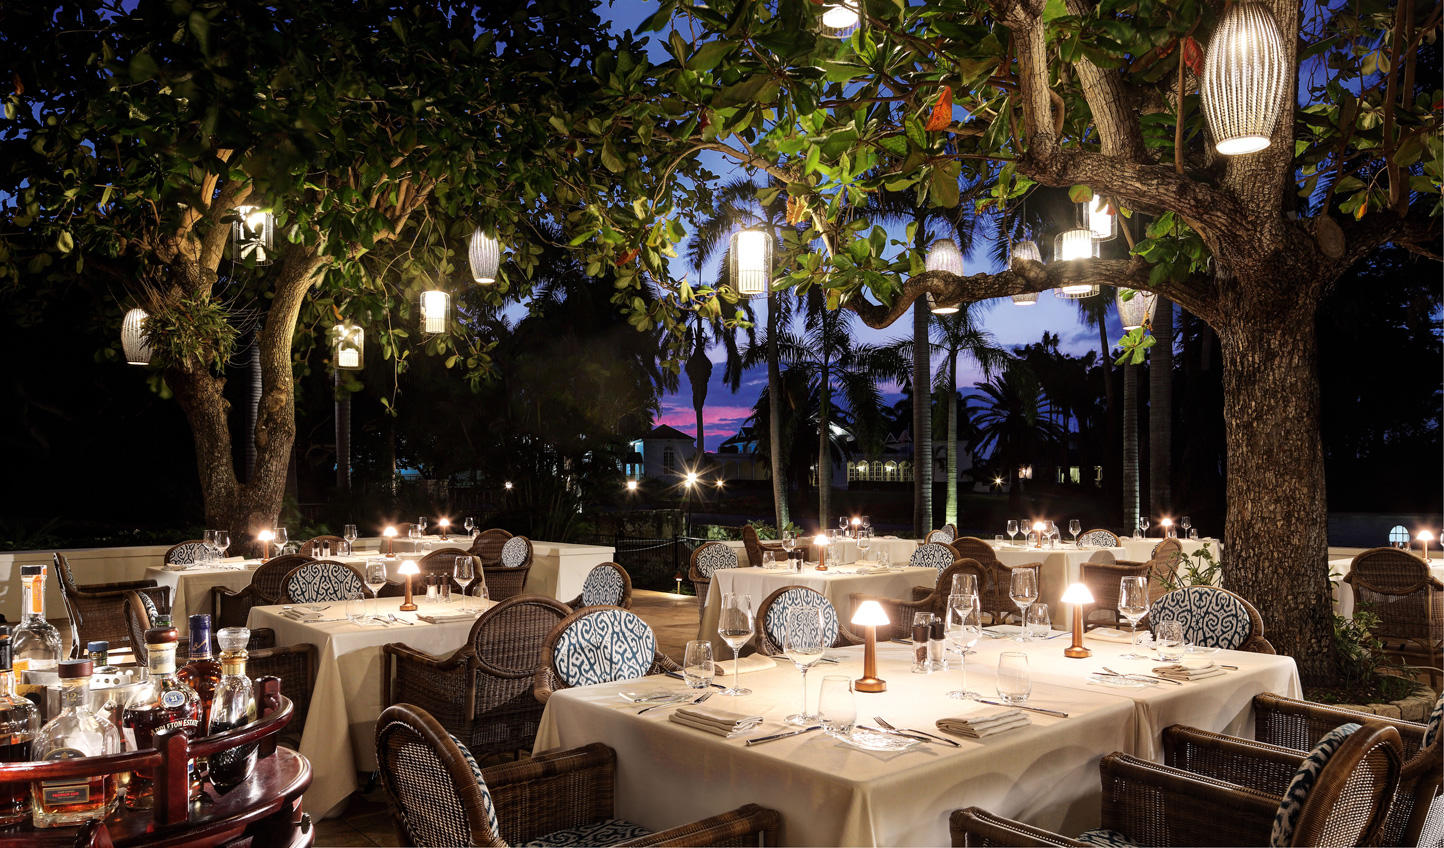 Dine by candlelight at The Sugar Mill